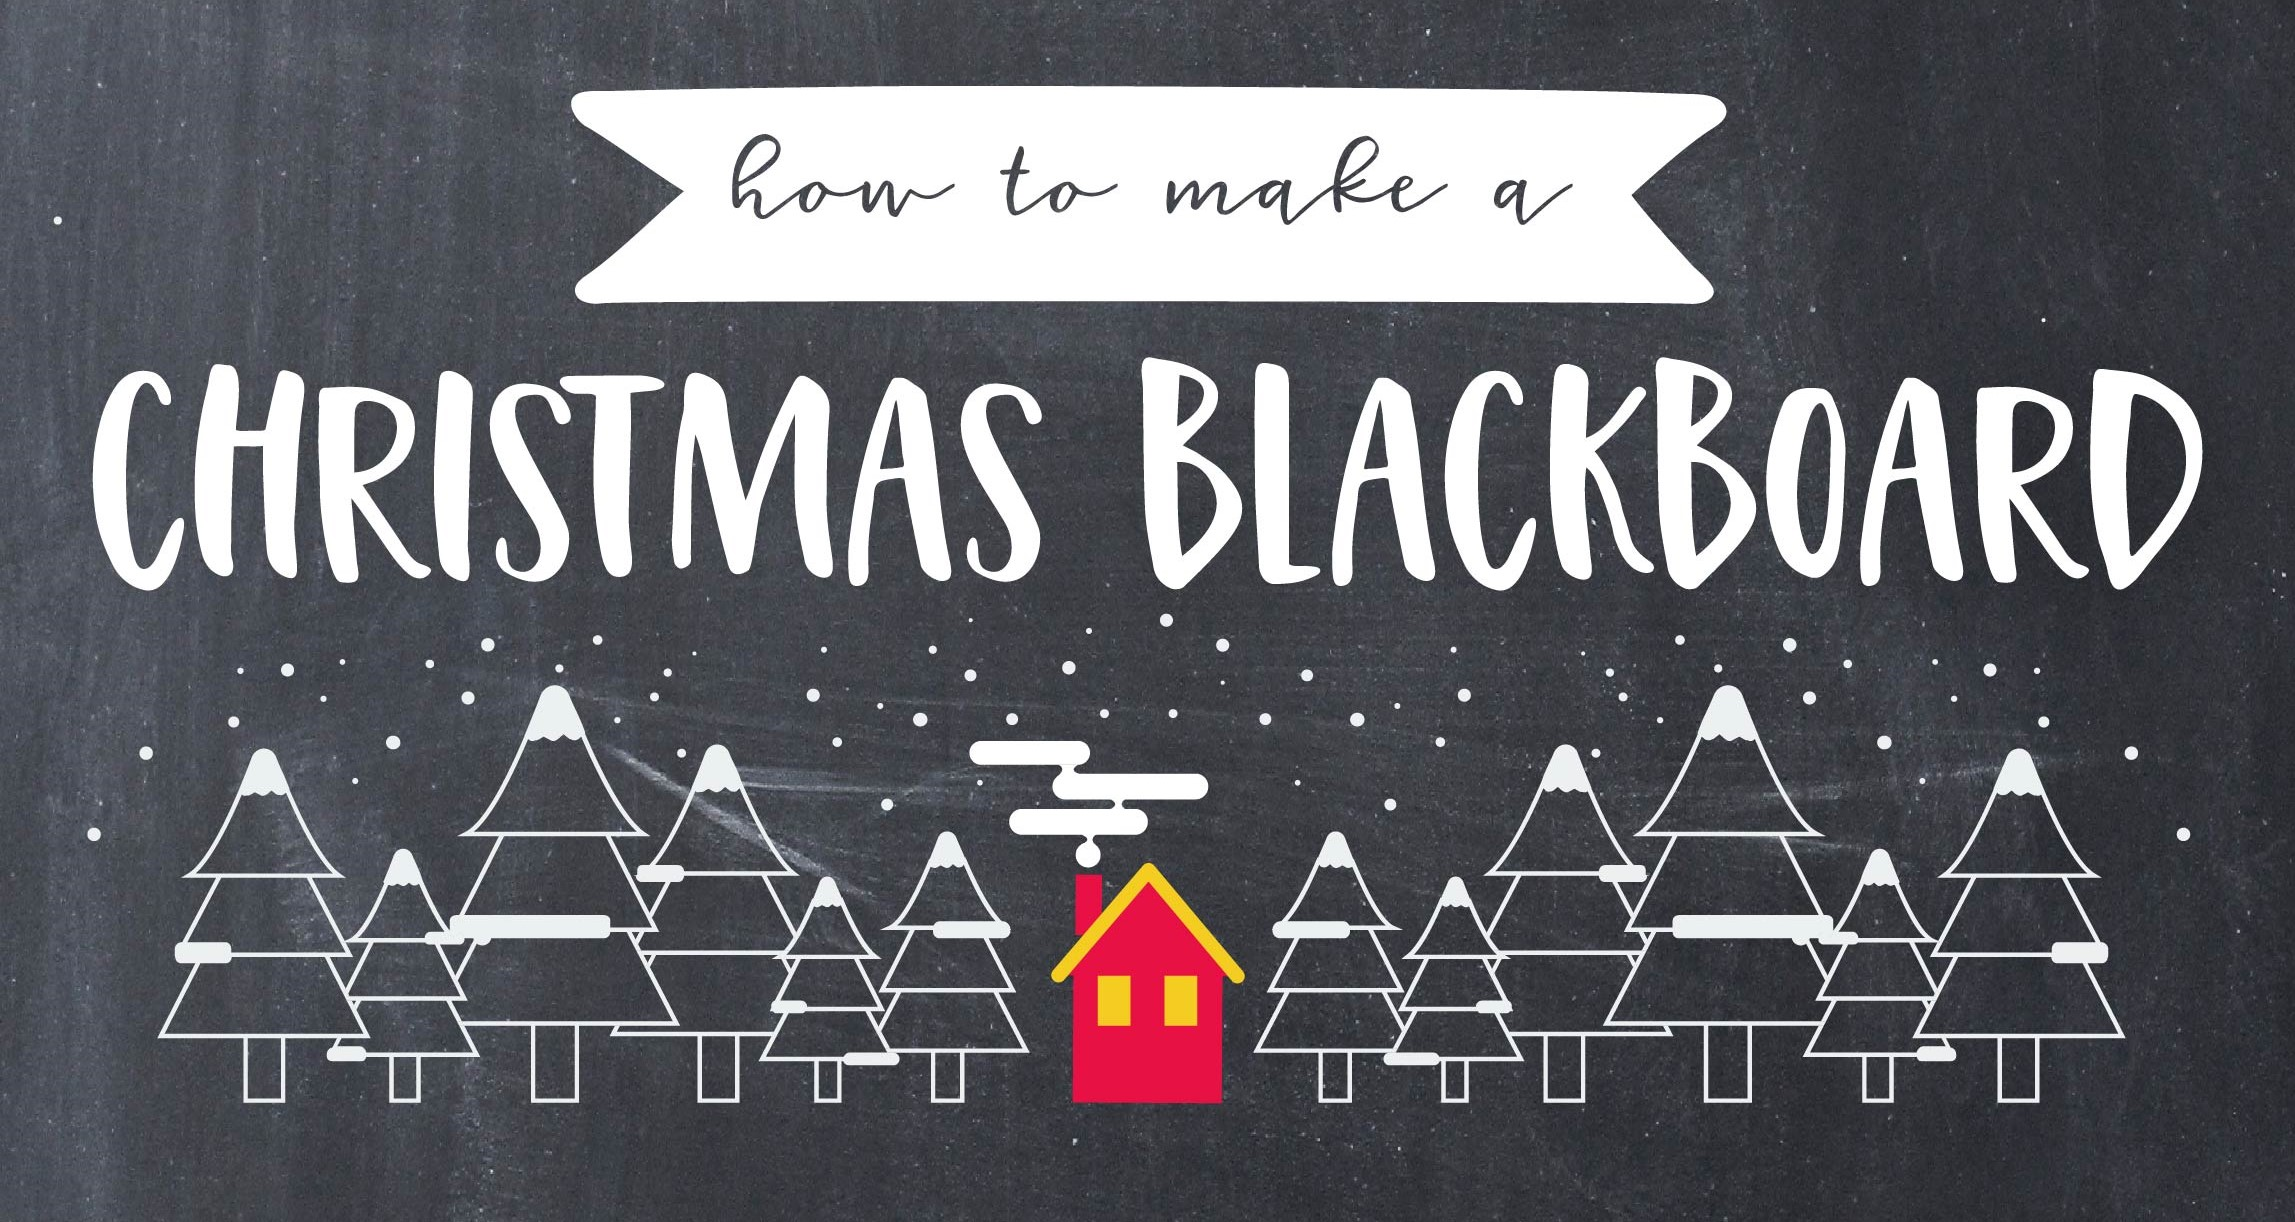 Christmas blackboard transfer tutorial